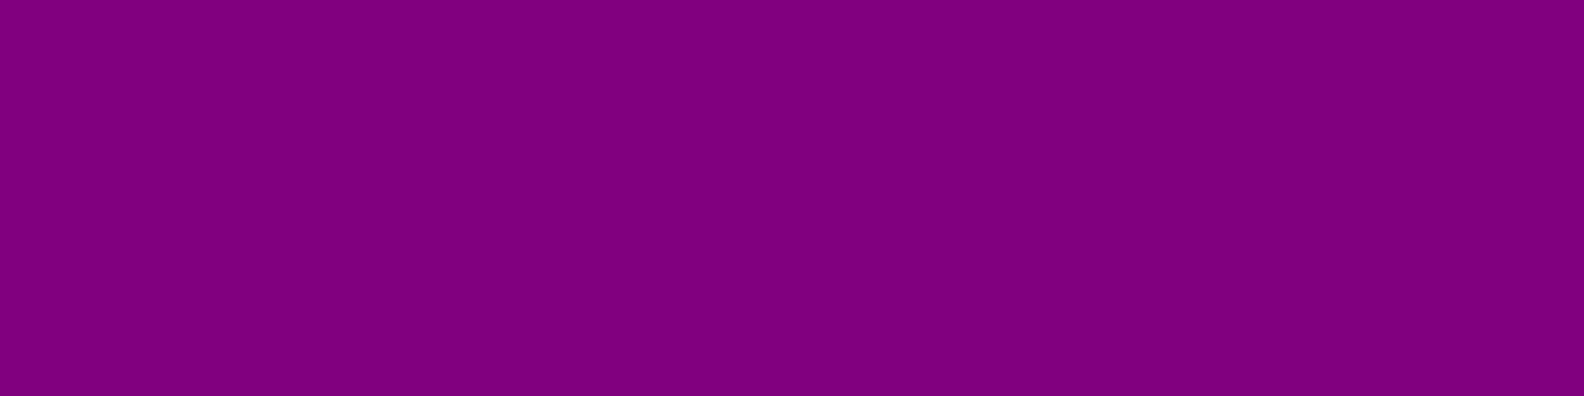 1584x396 Purple Web Solid Color Background